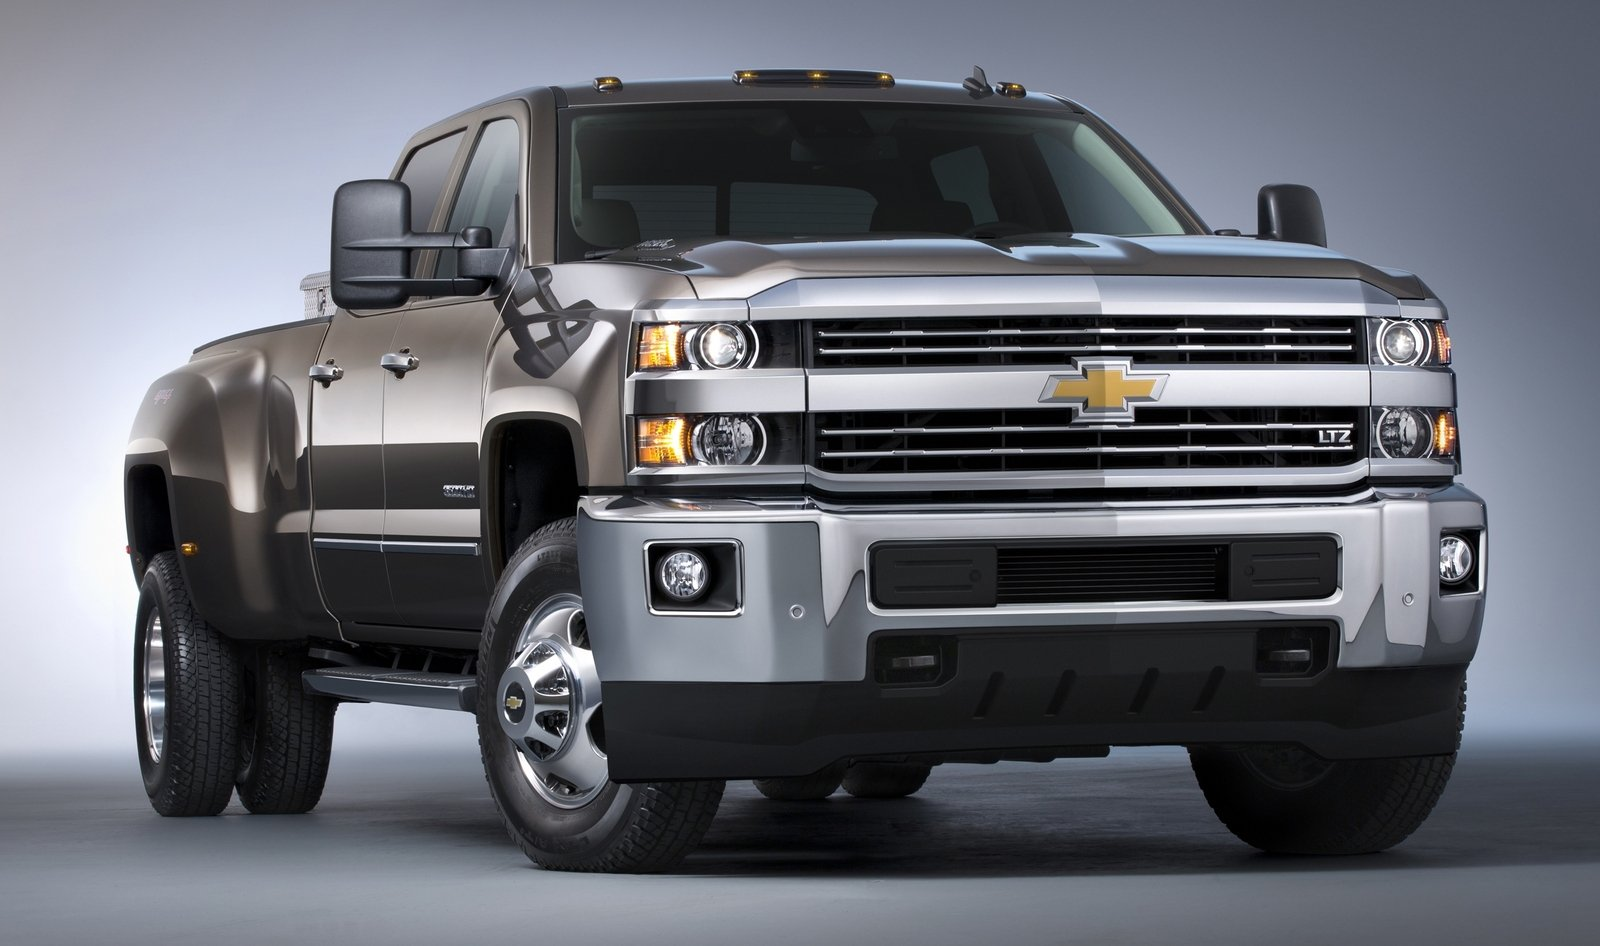 All Chevy chevy cars 2015 2015 Chevrolet Silverado HD Review - Top Speed